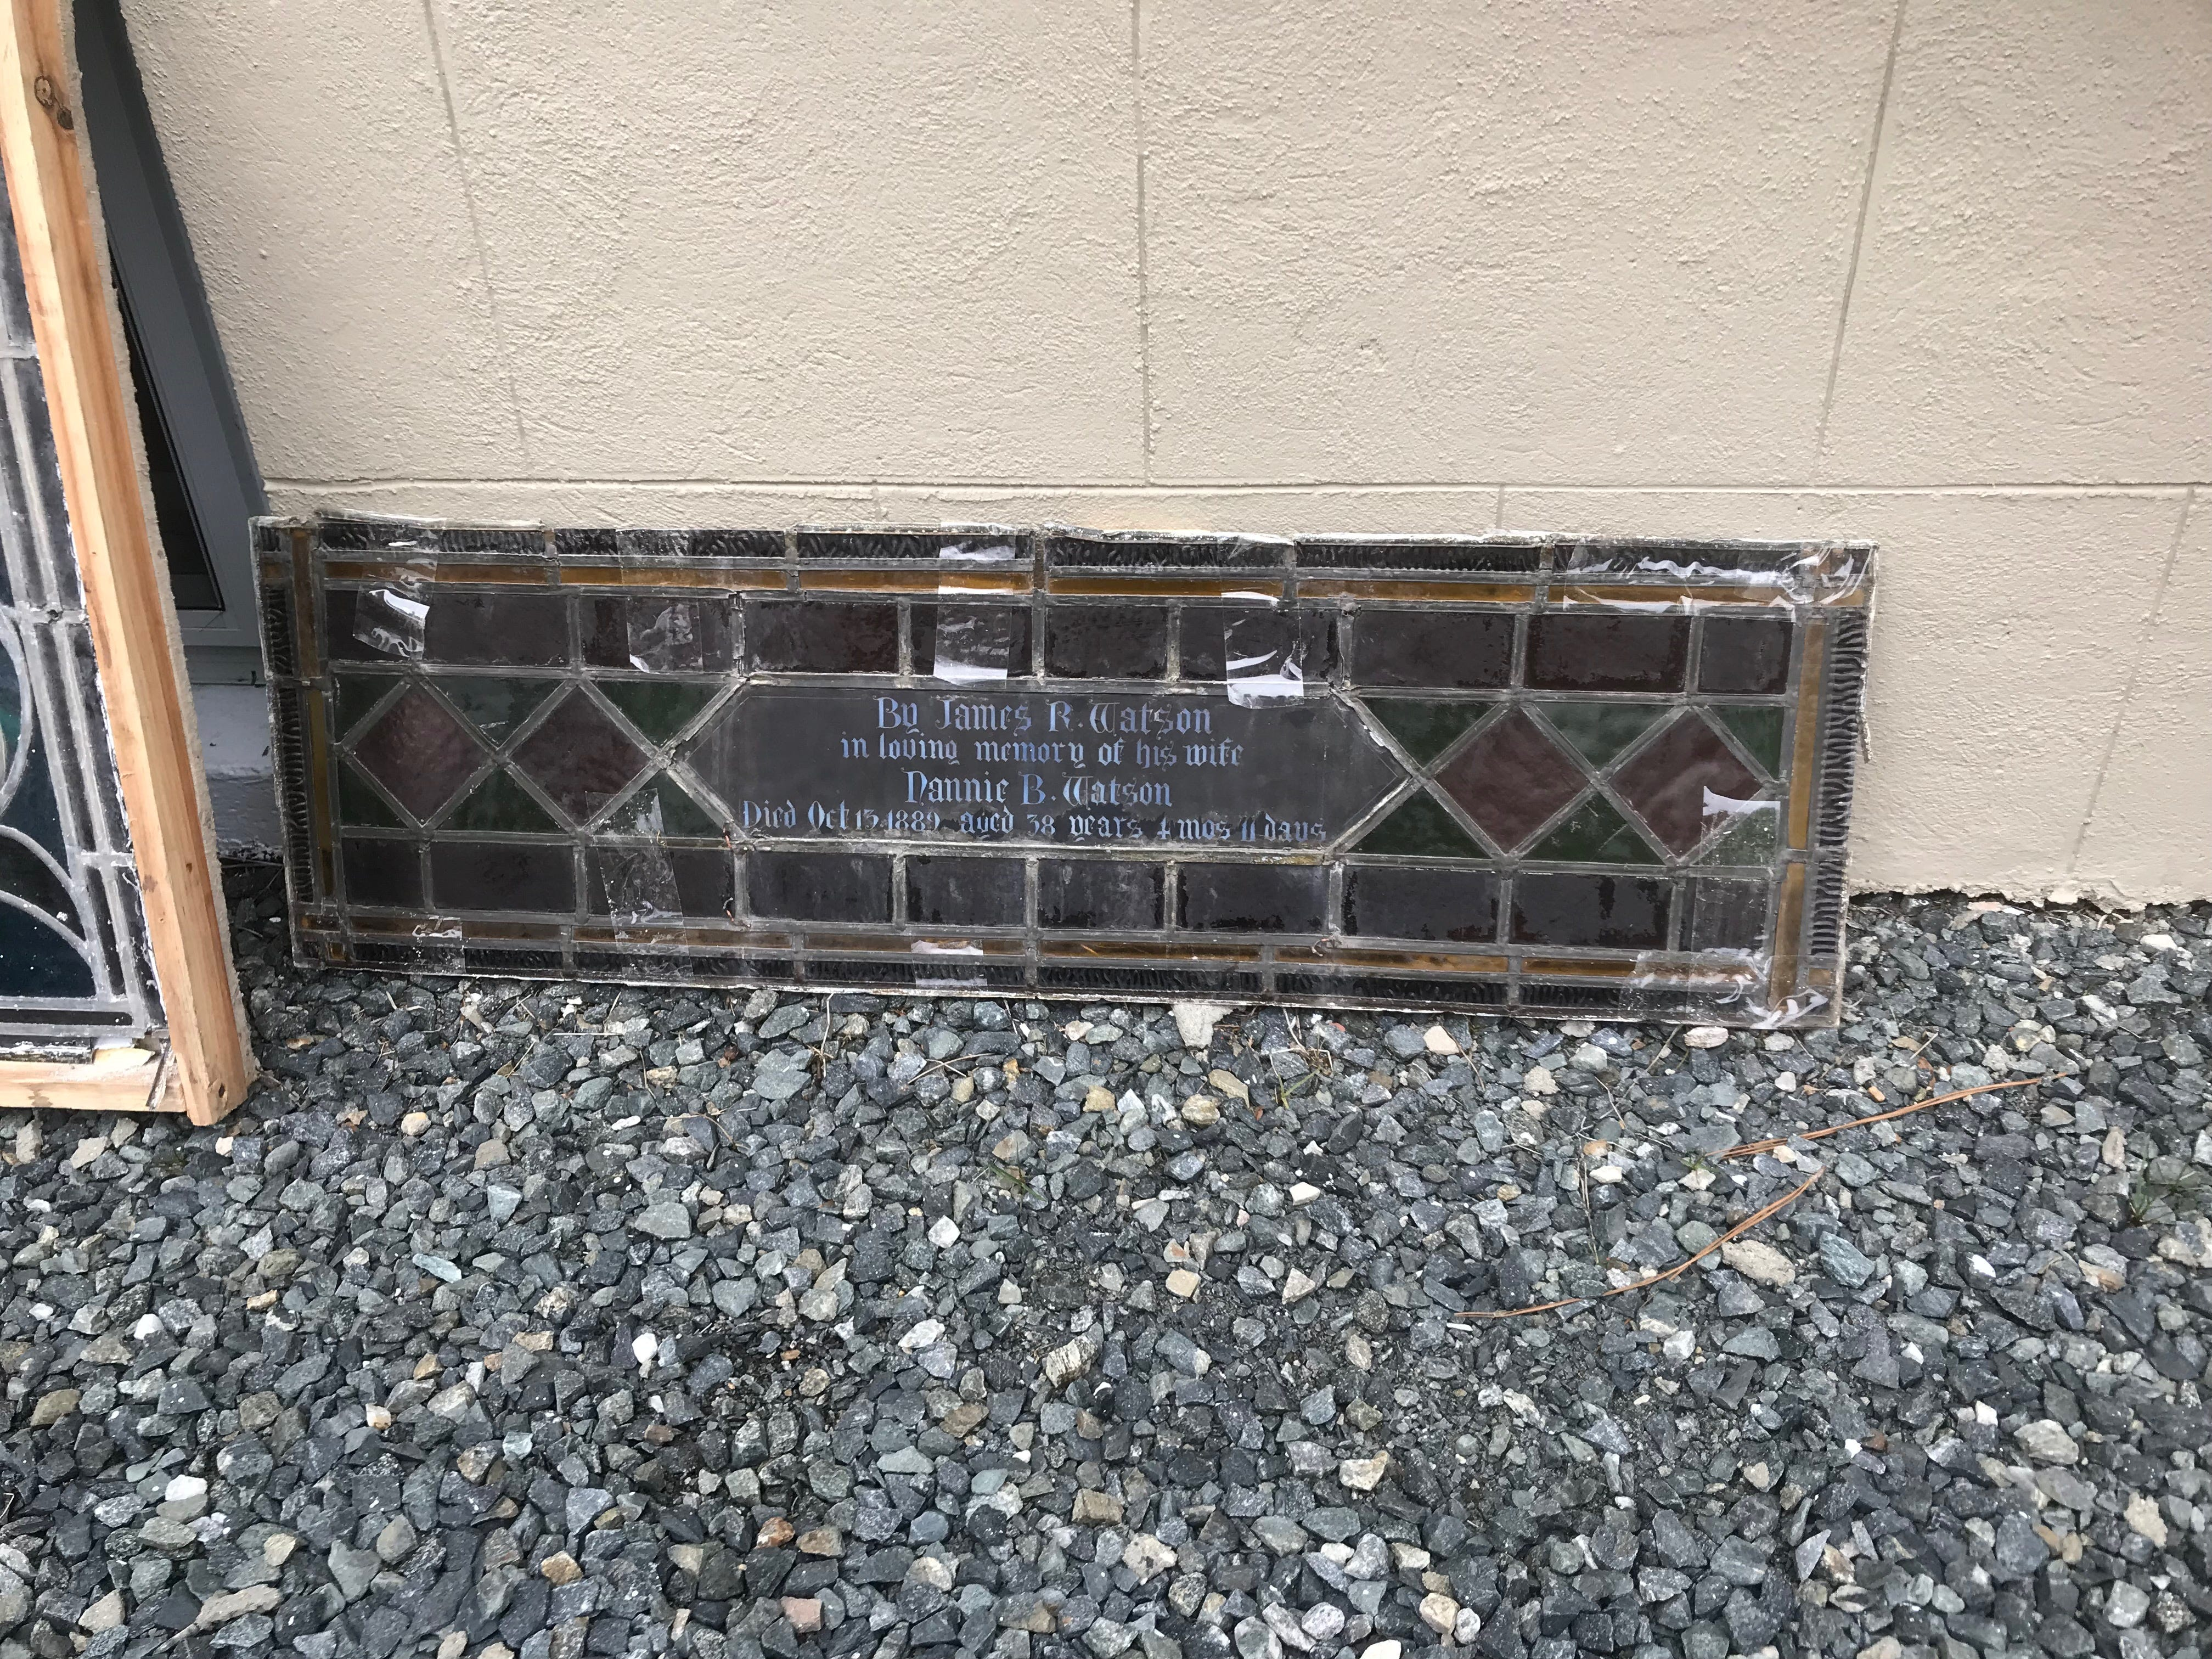 One of the sections of a stained glass window awaiting restoration sits outside Historic Cokesbury Church after Michael Mezalick removed it from its spot in the church.